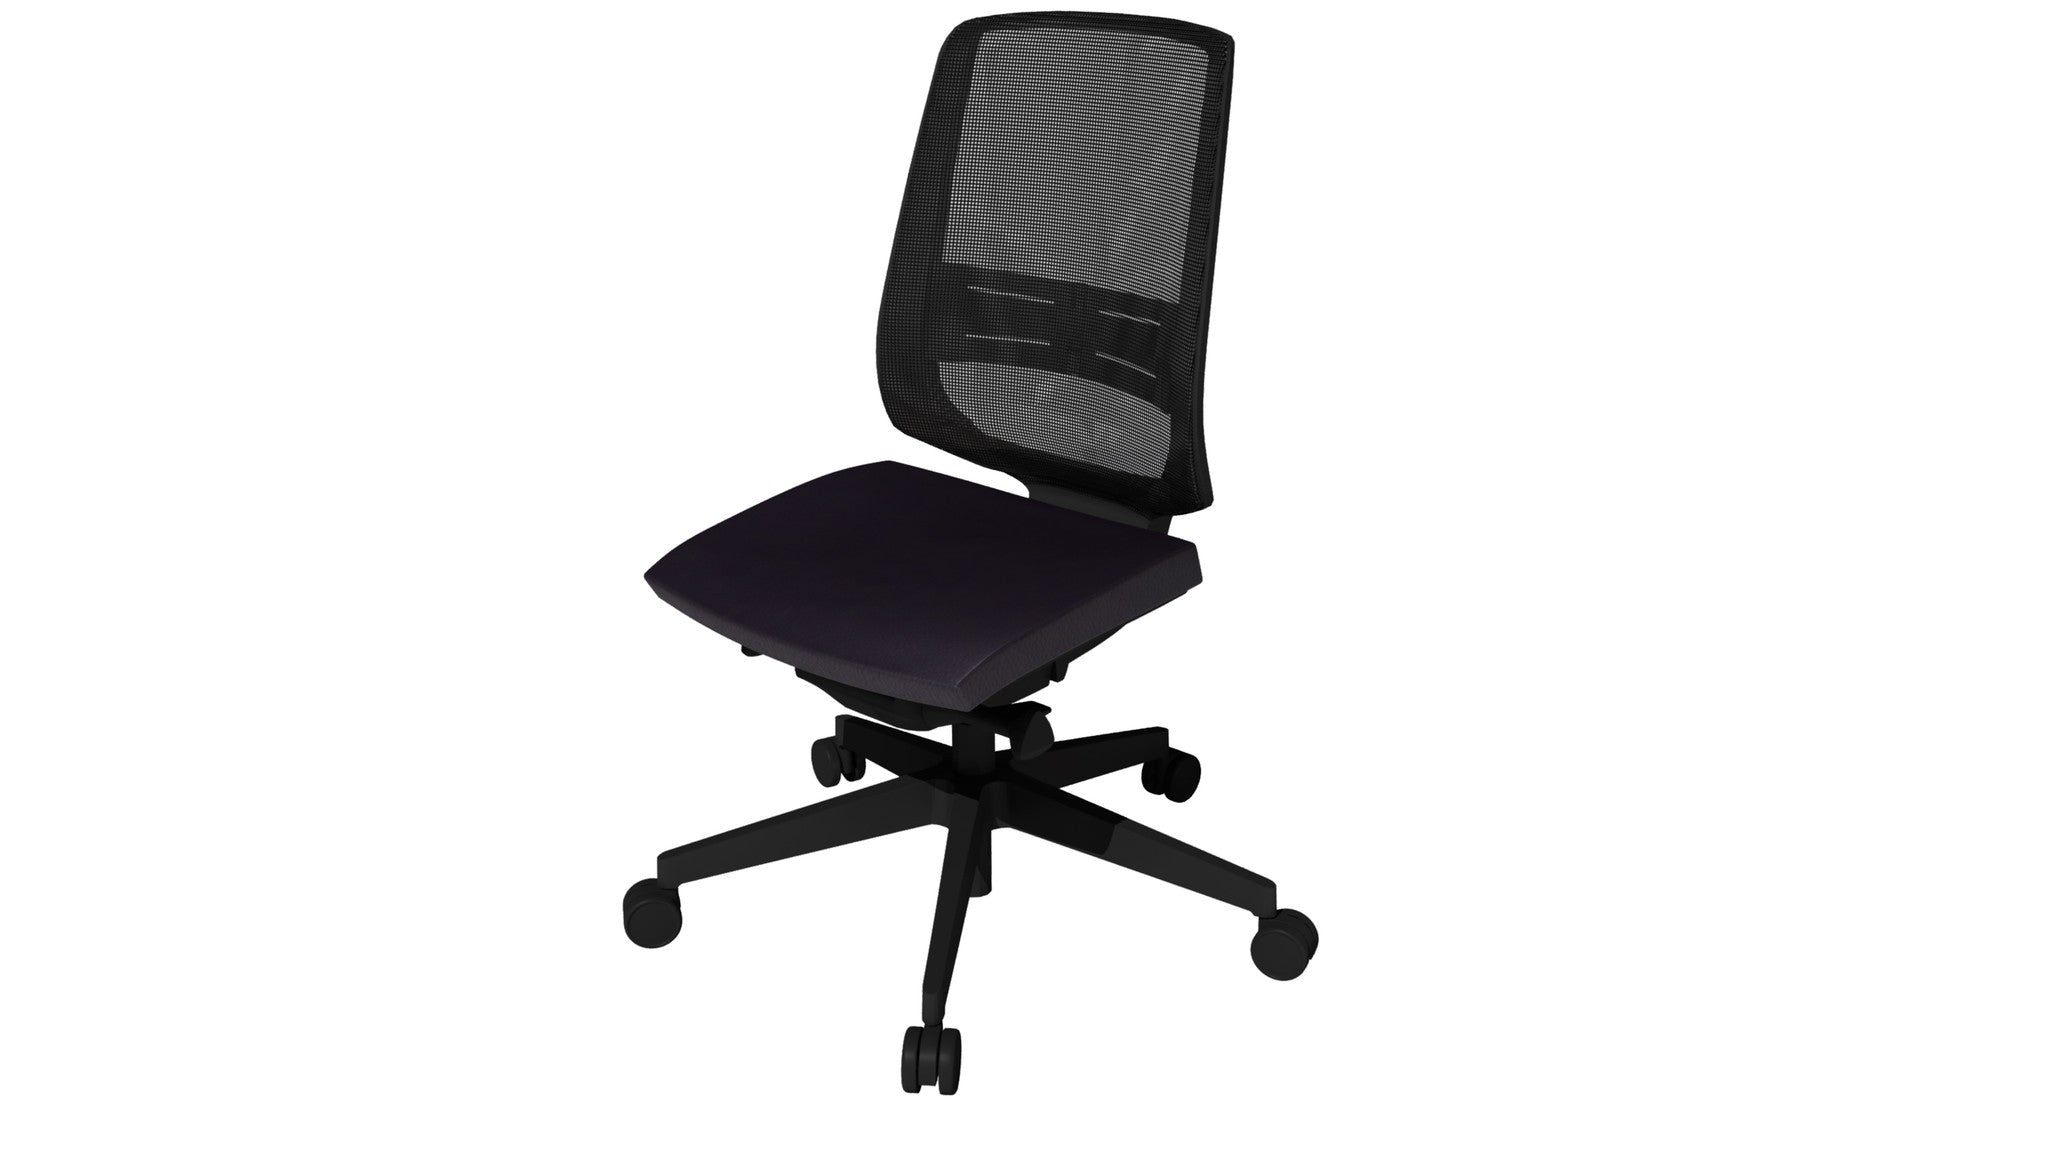 Rumas kontorstol office chair Fly pumpe - black leather (sl-18)